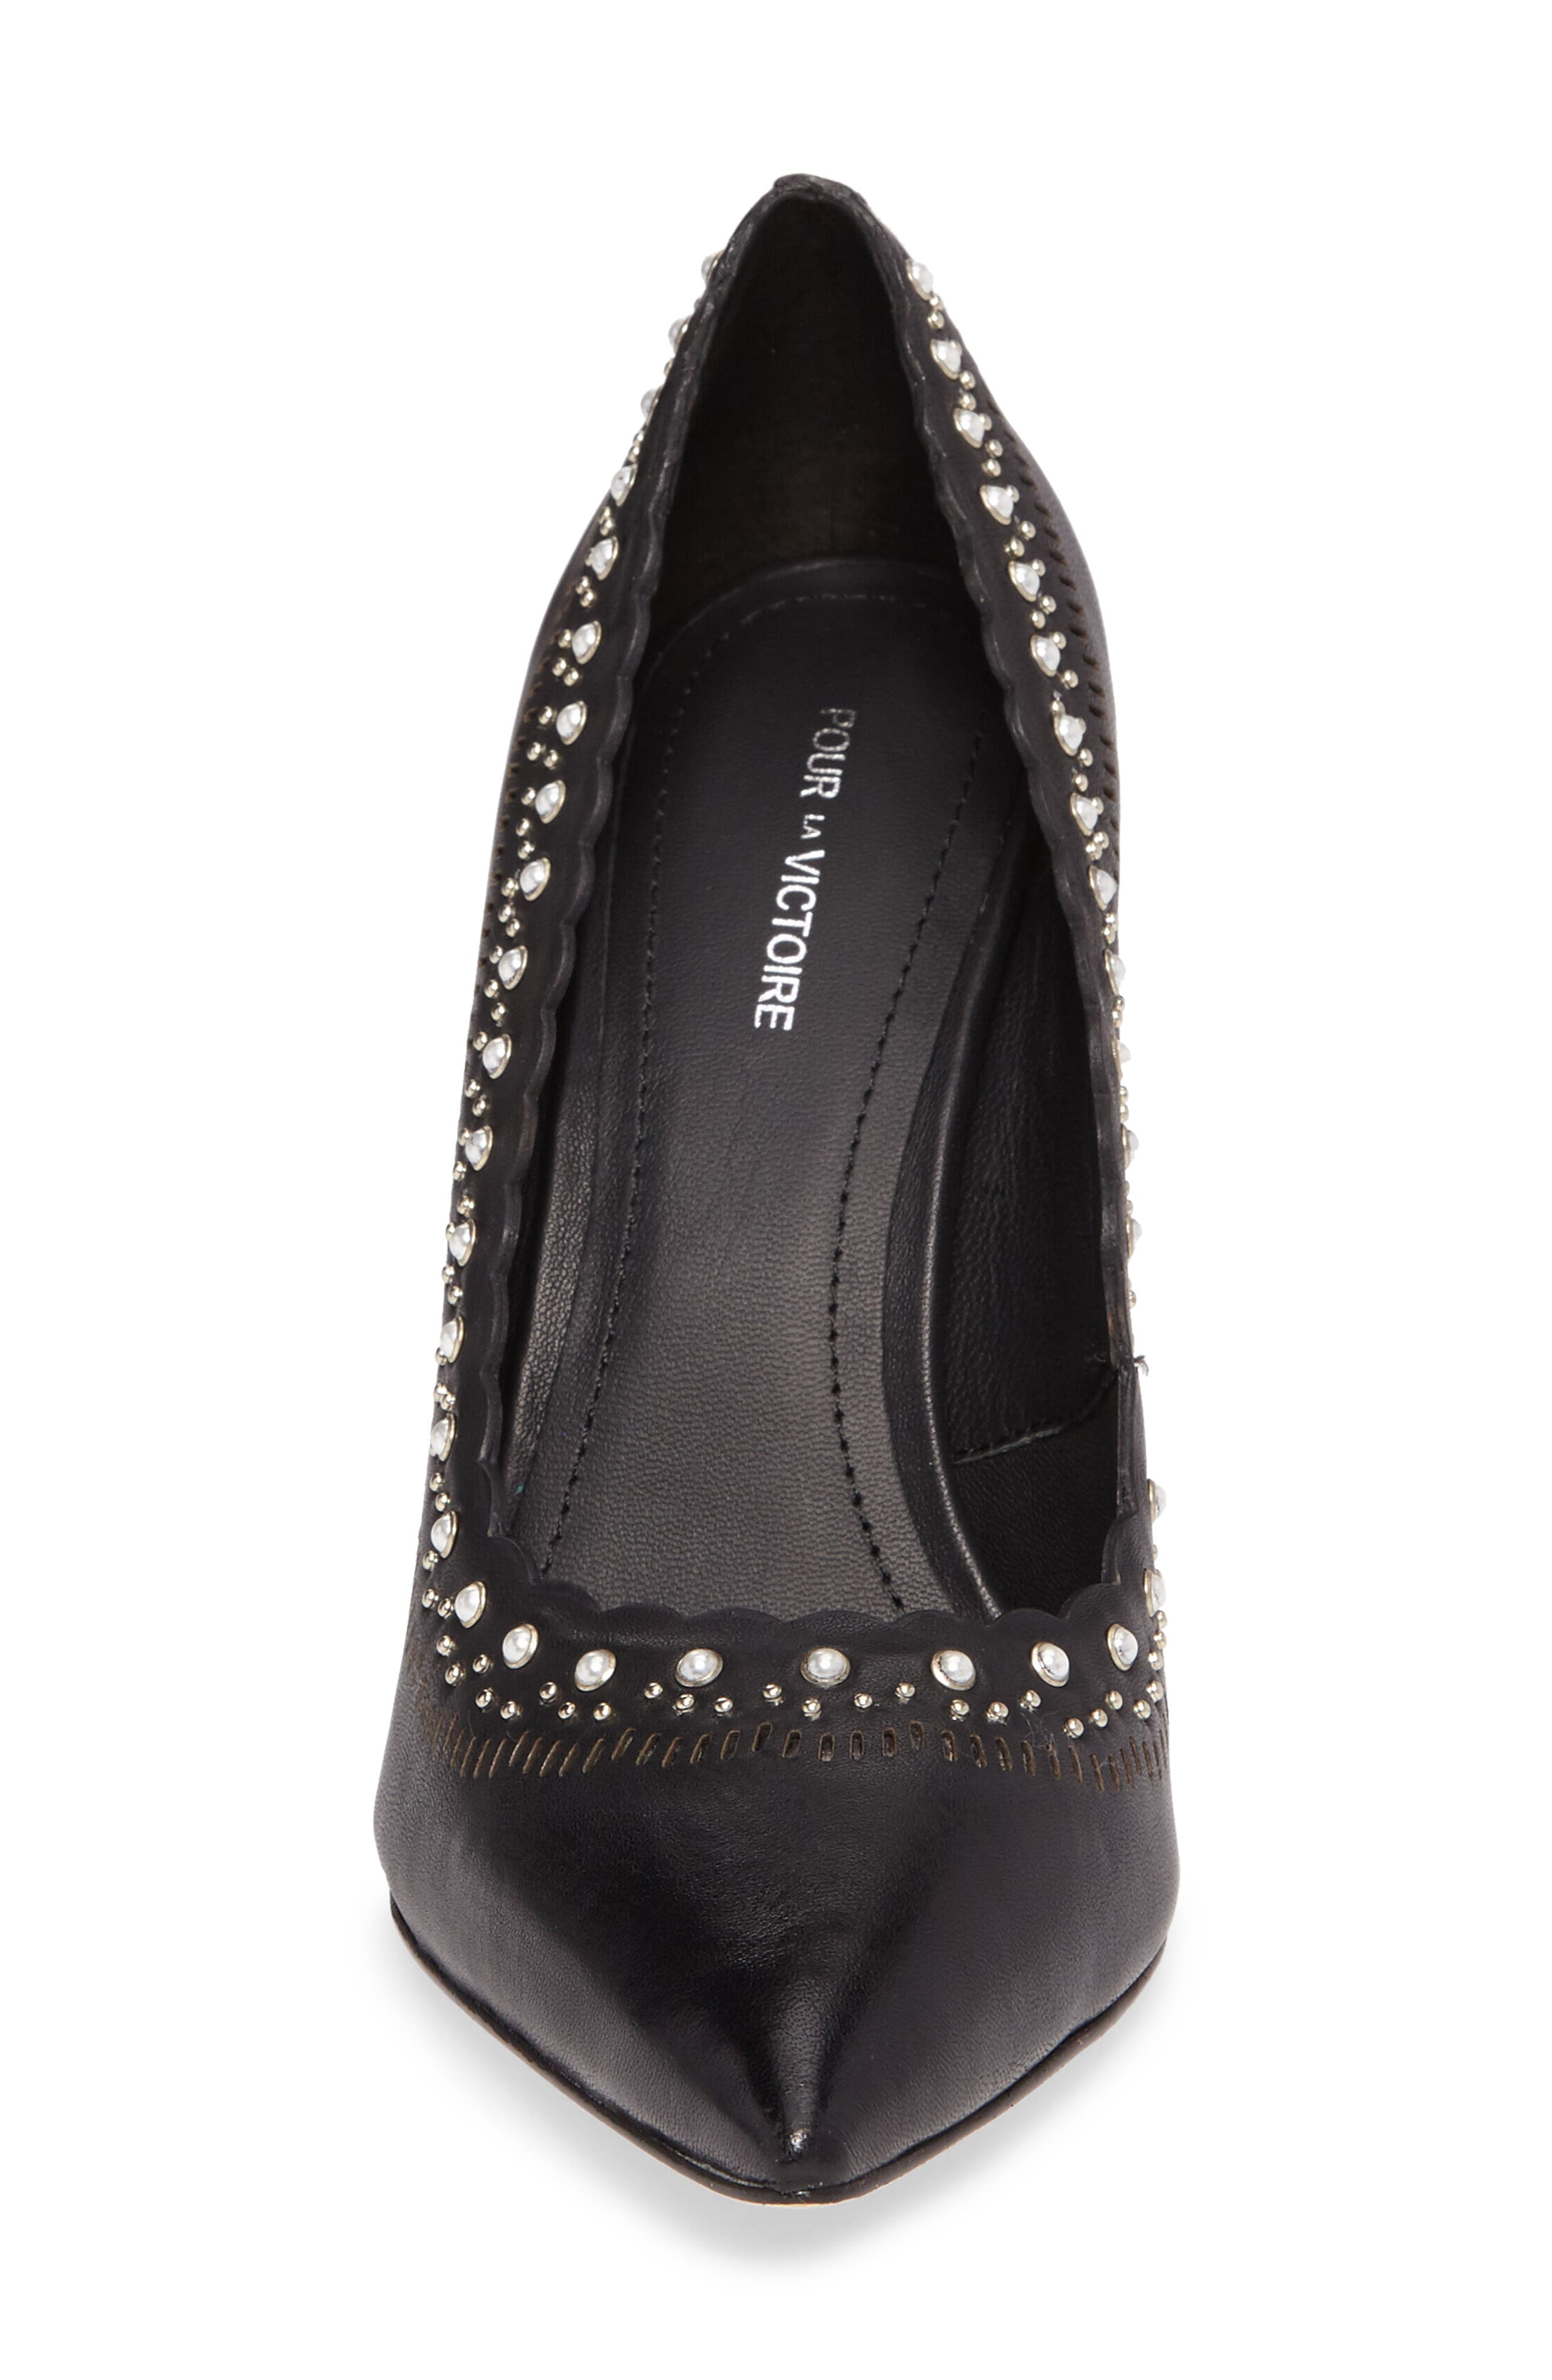 Cerella Embellished Pump,                             Alternate thumbnail 4, color,                             Black Leather